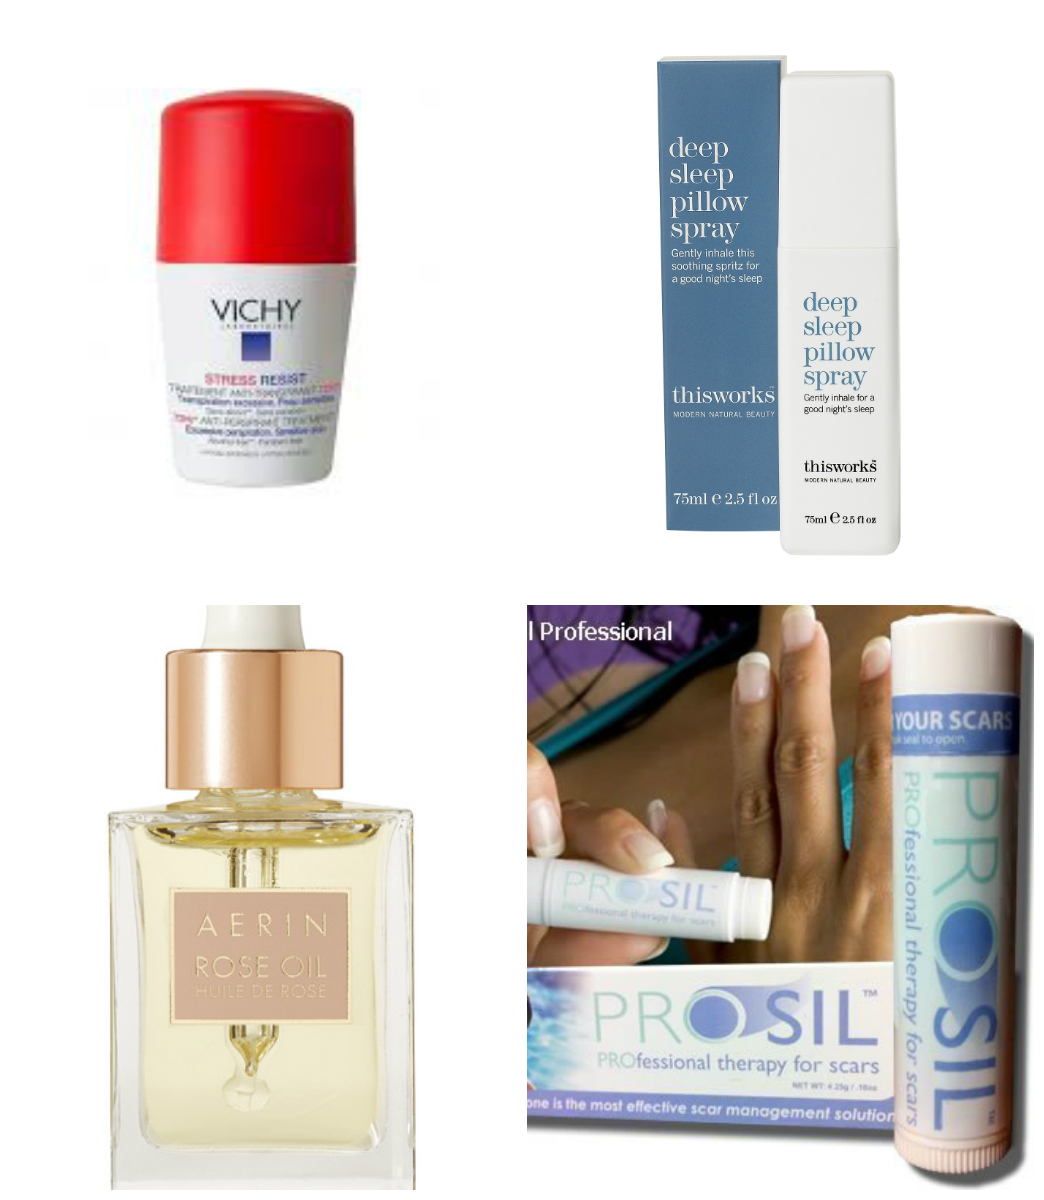 Julia's November Favorites From Aerin, Vichy + More